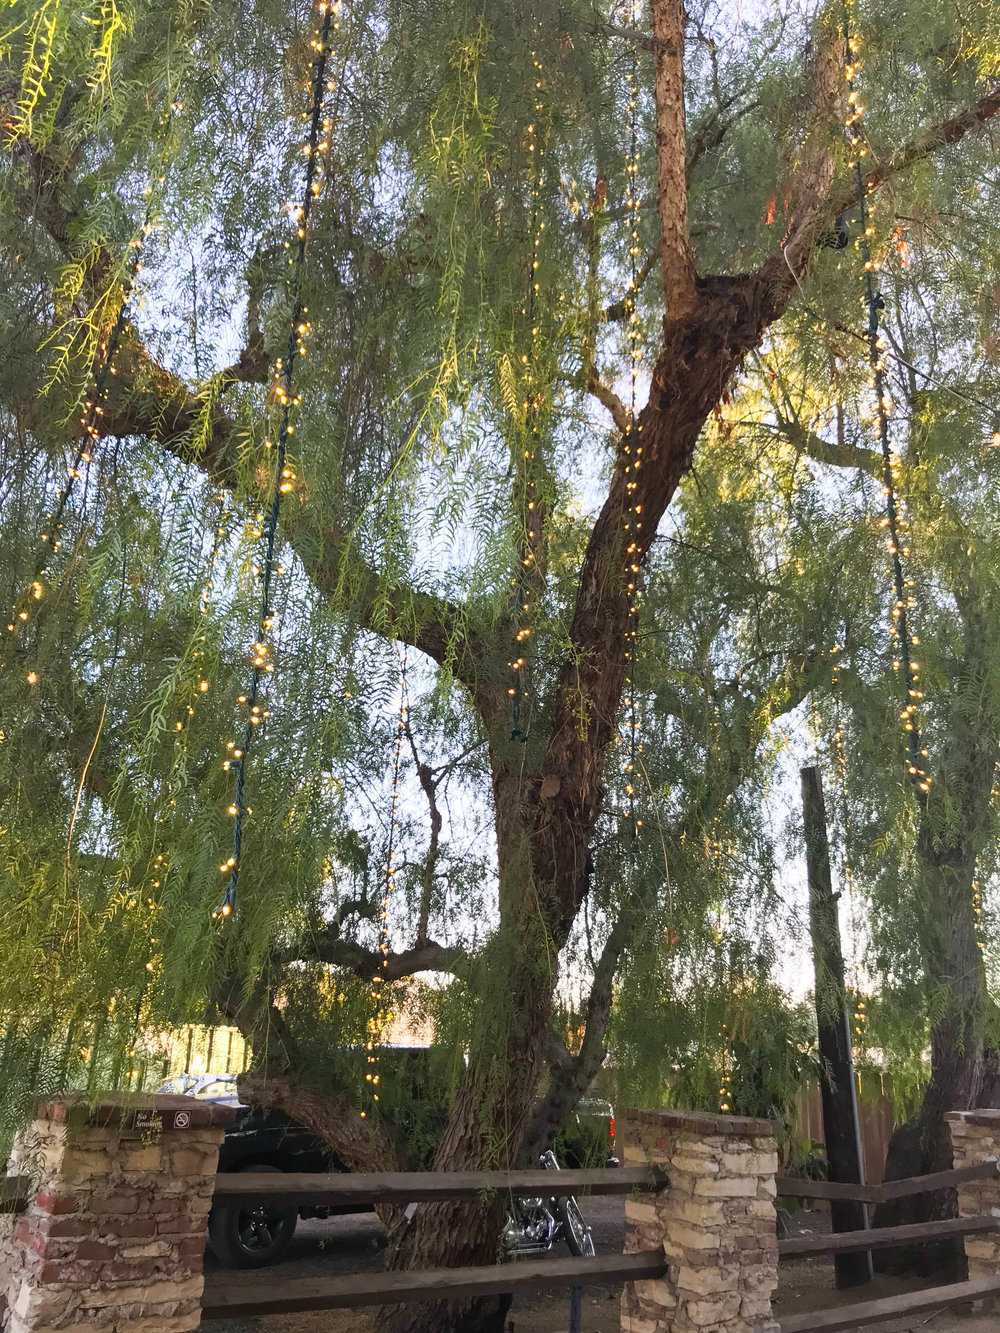 Malibu Wine and Beer Garden - Willow tree lights